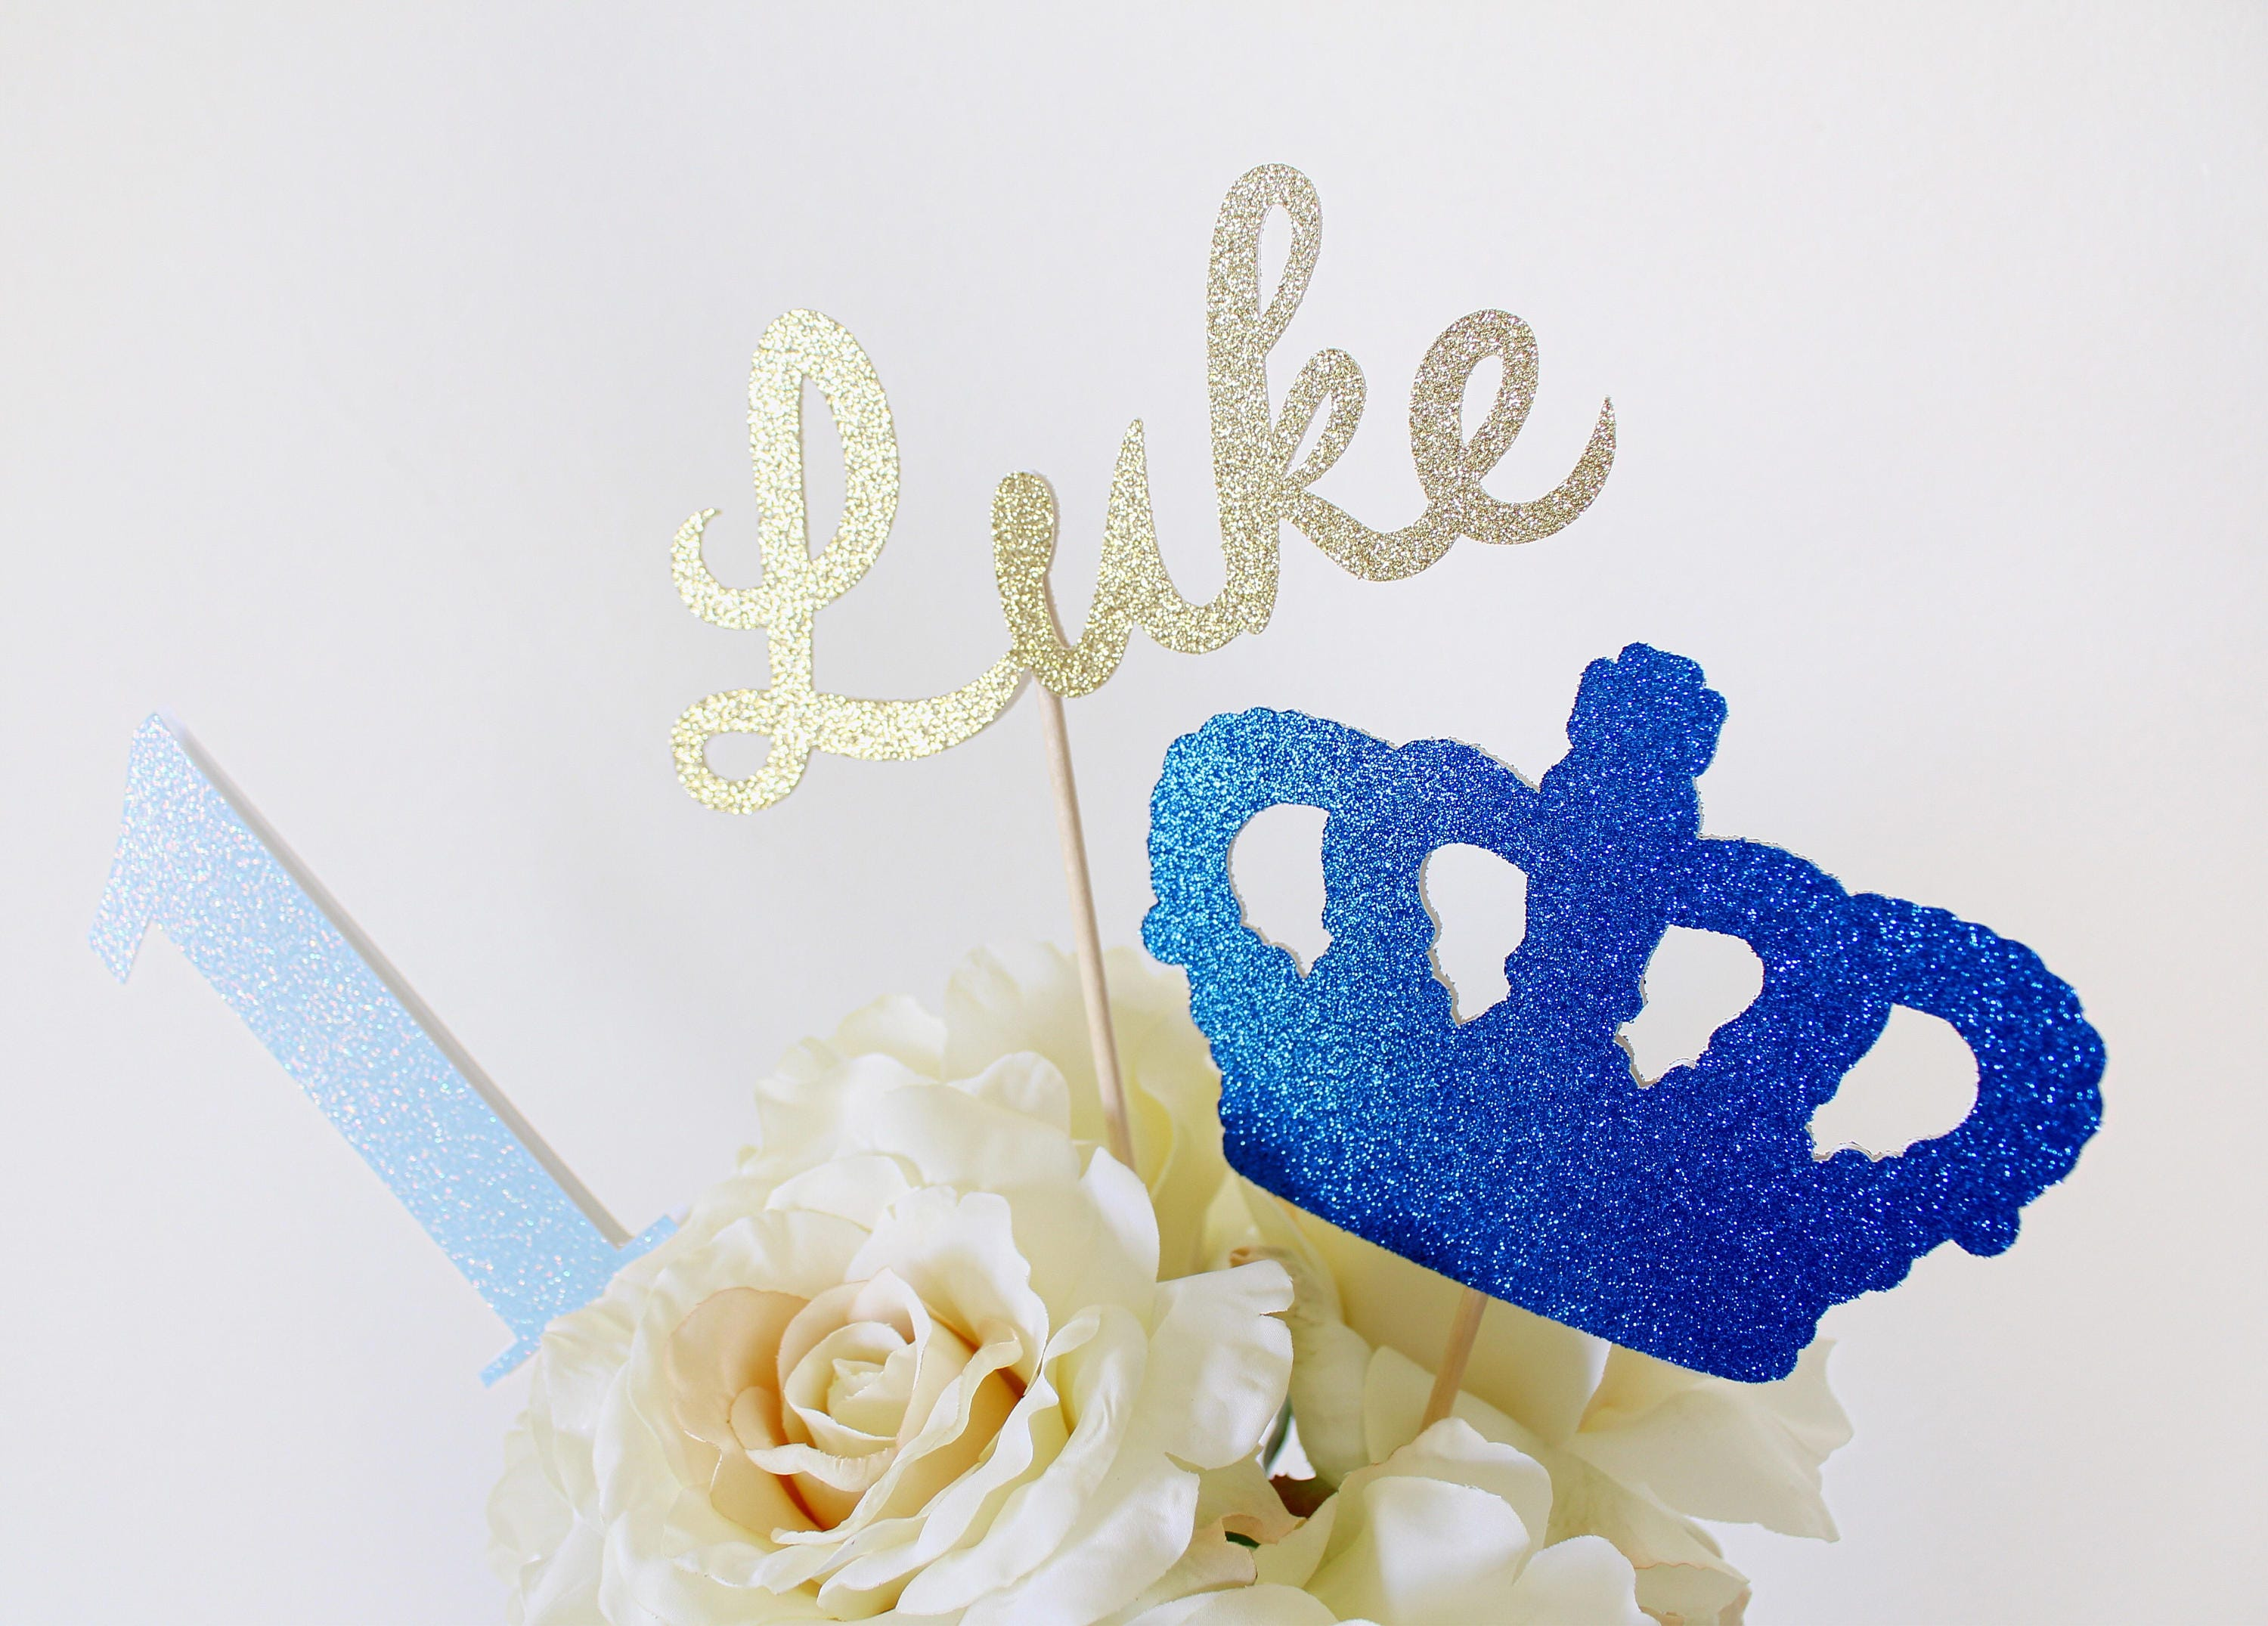 Royal Baby Shower Centerpiece   Royal Baby Shower Decorations   Royal Baby  Shower   Little Prince